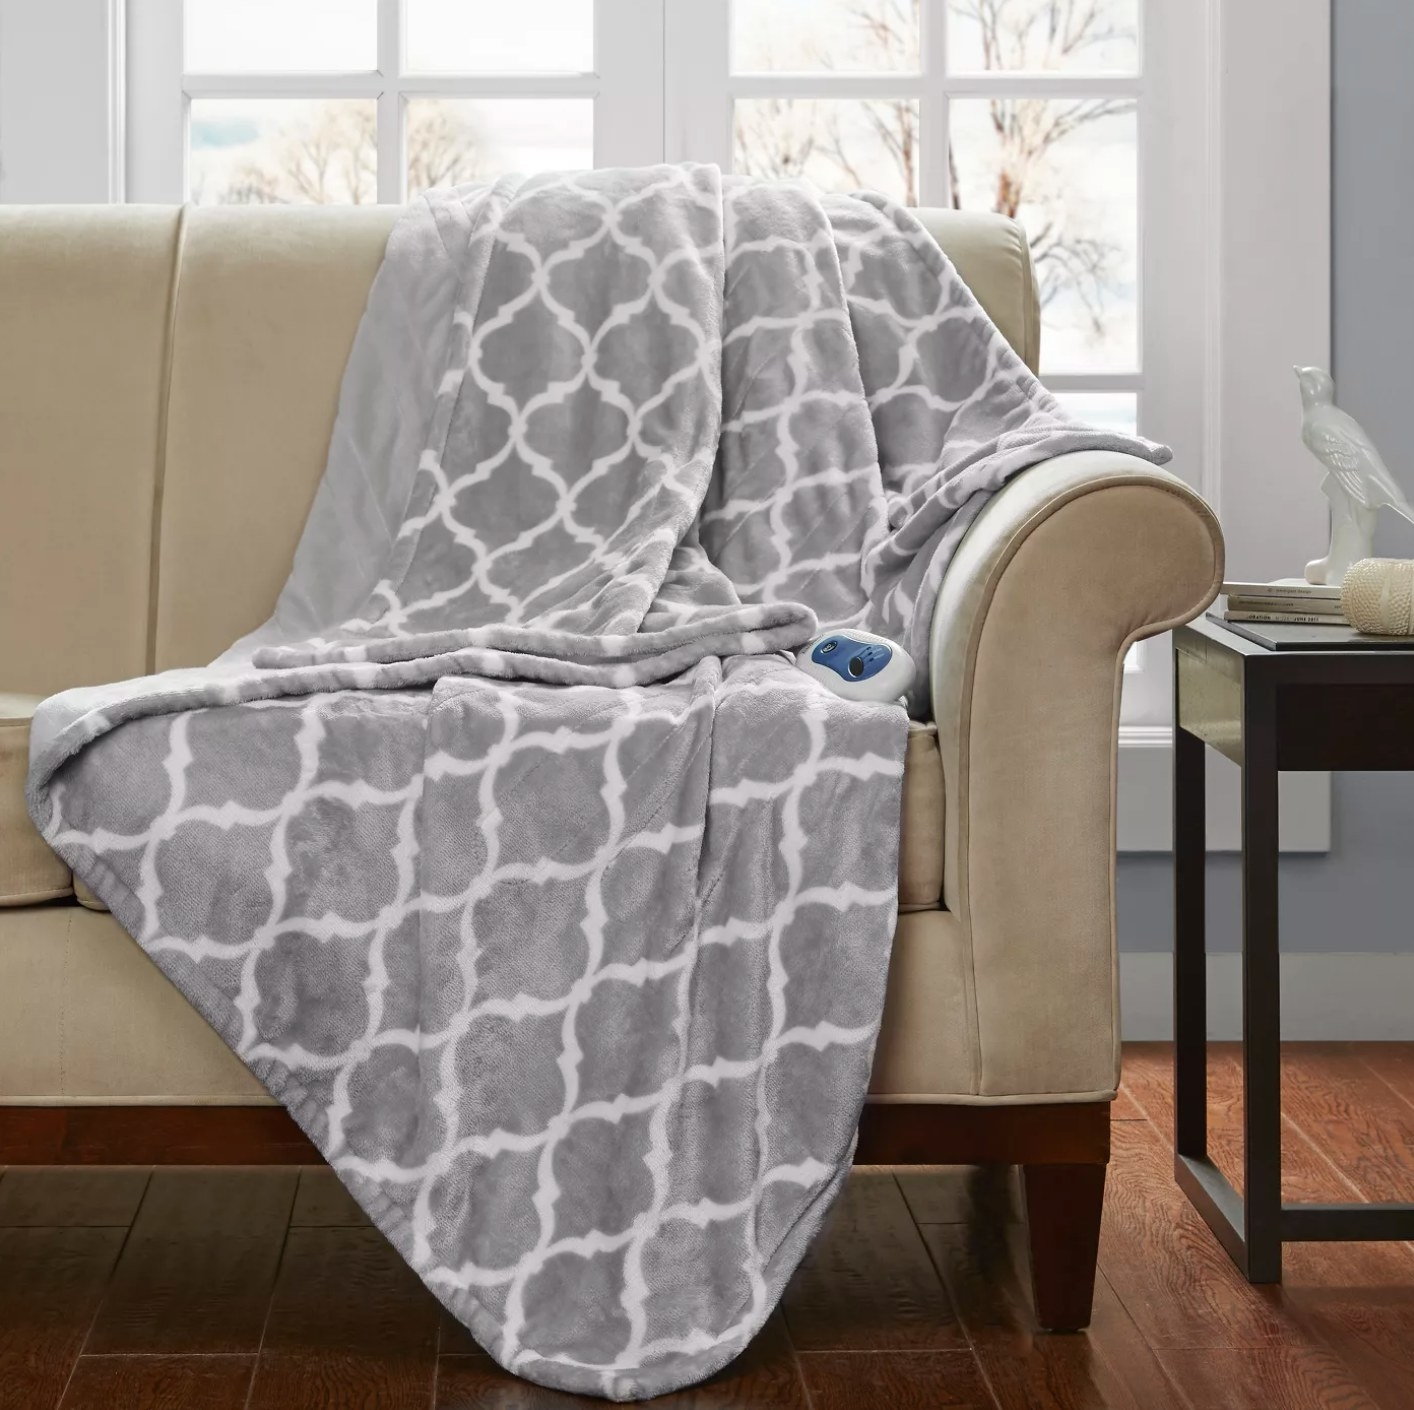 The electric heated oversized throw in gray